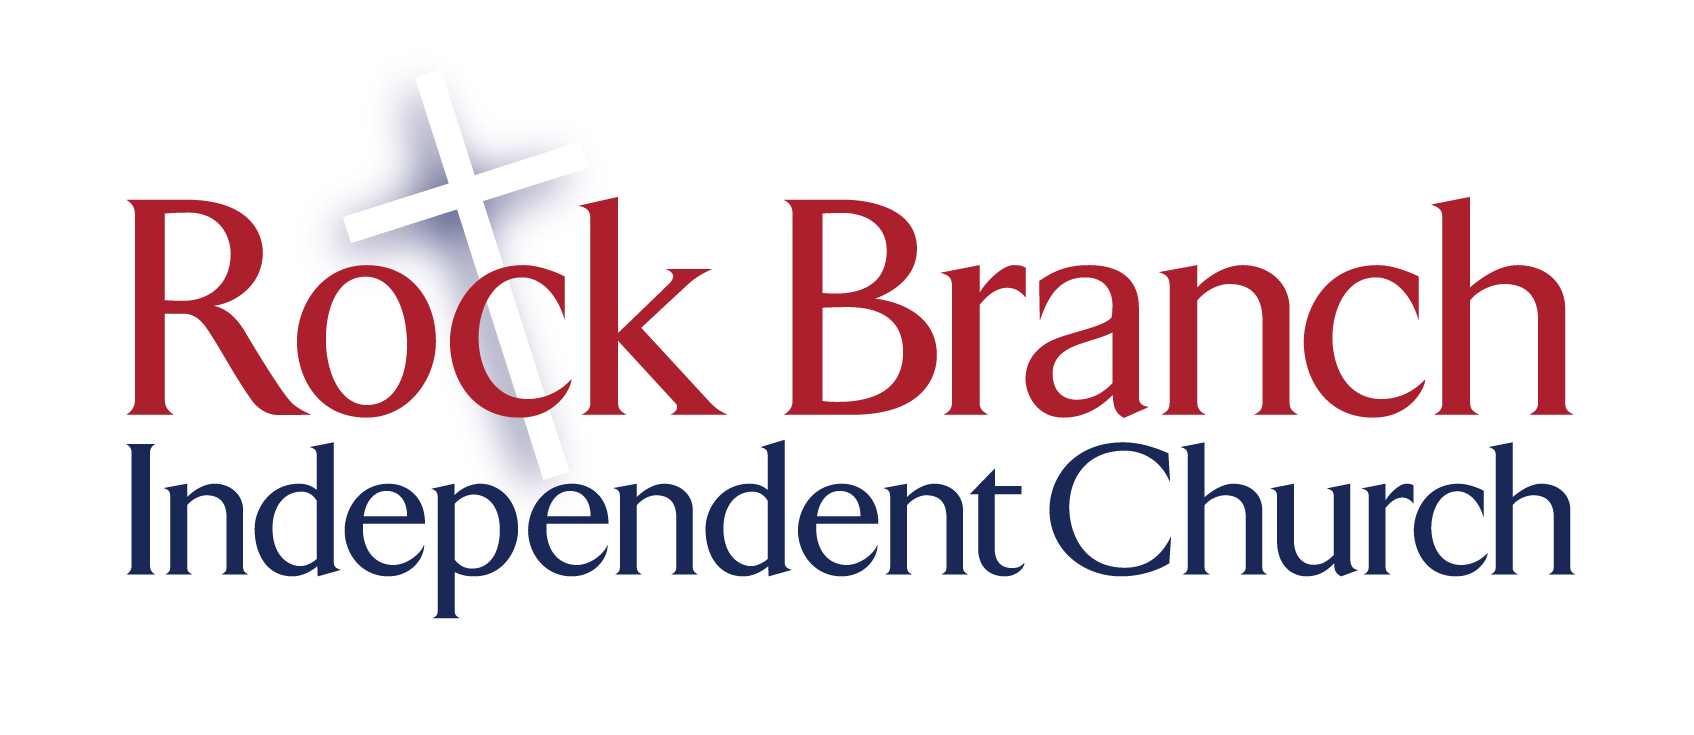 Rock Branch Independent Church Podcast